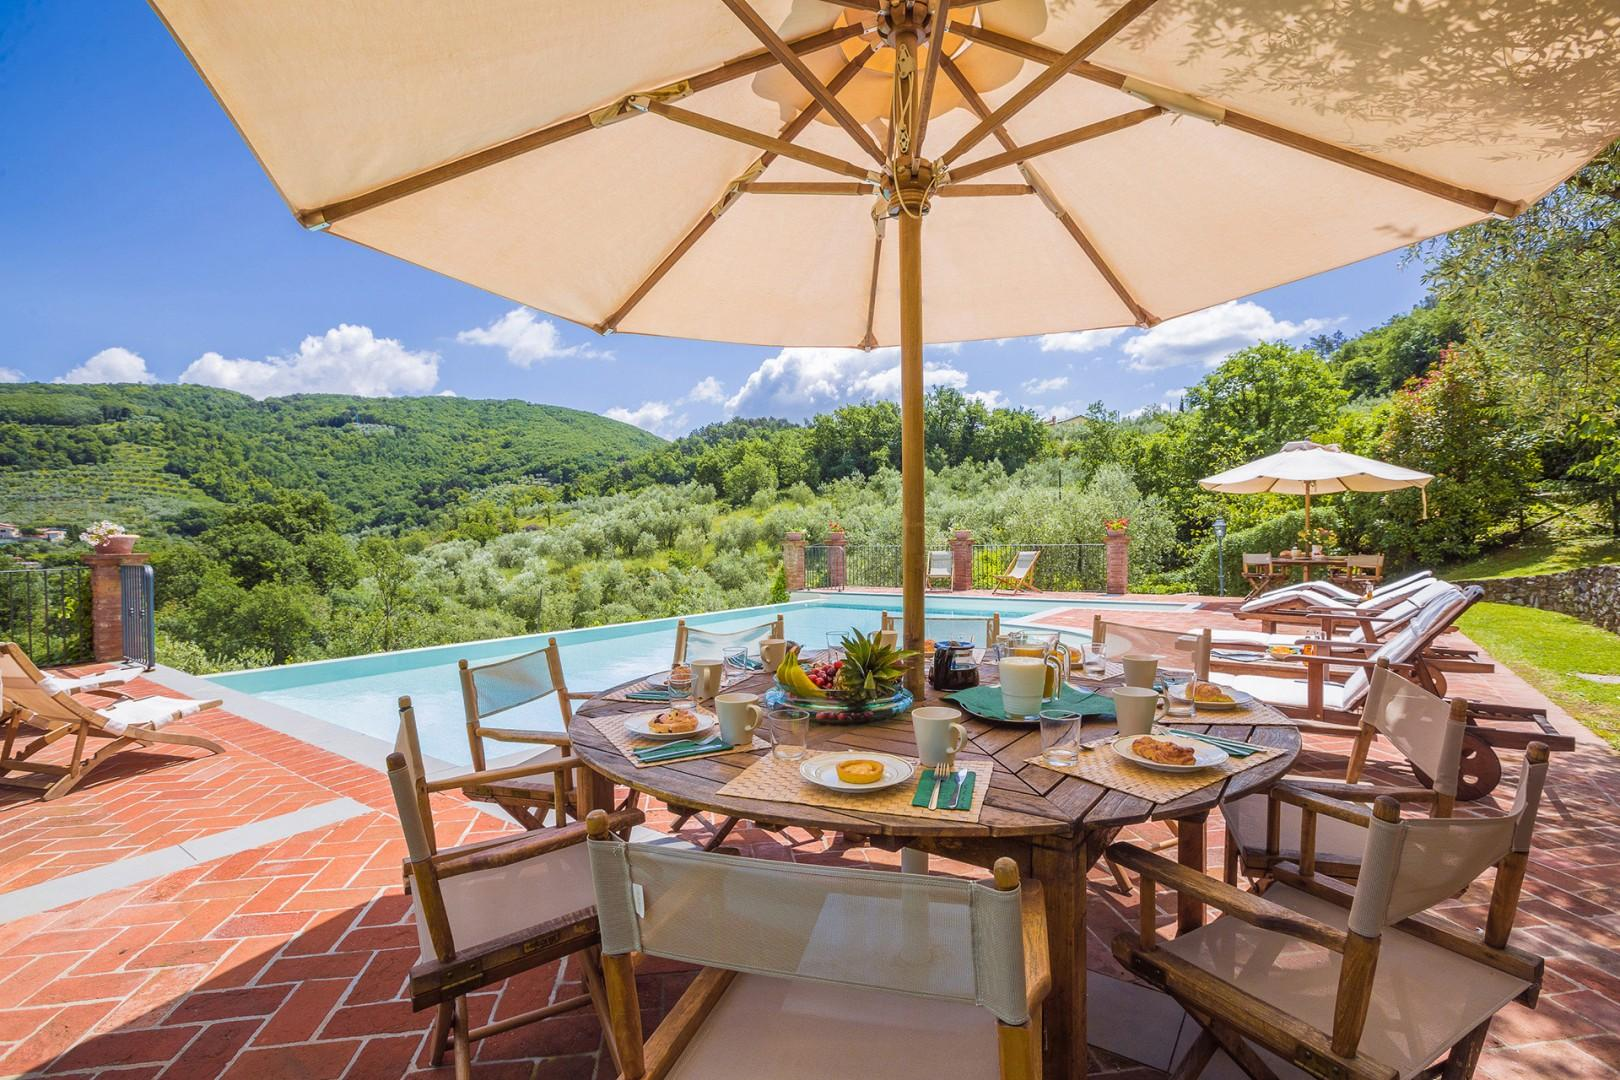 Dine, sunbathe, relax poolside. A changing room and shower is by the pool.